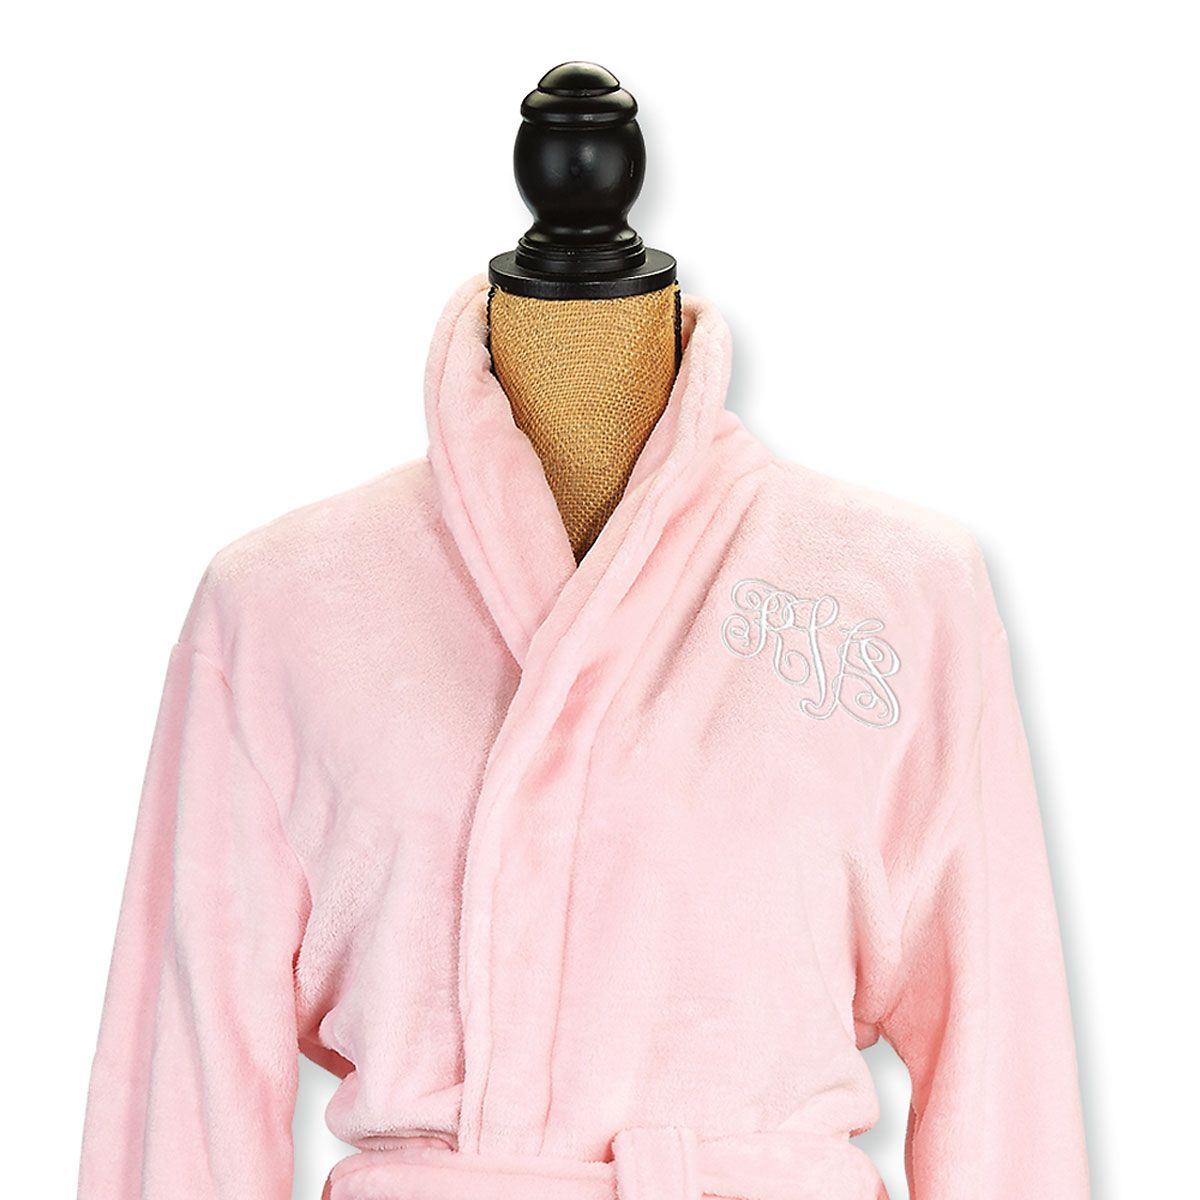 Personalized Pink Spa Robe